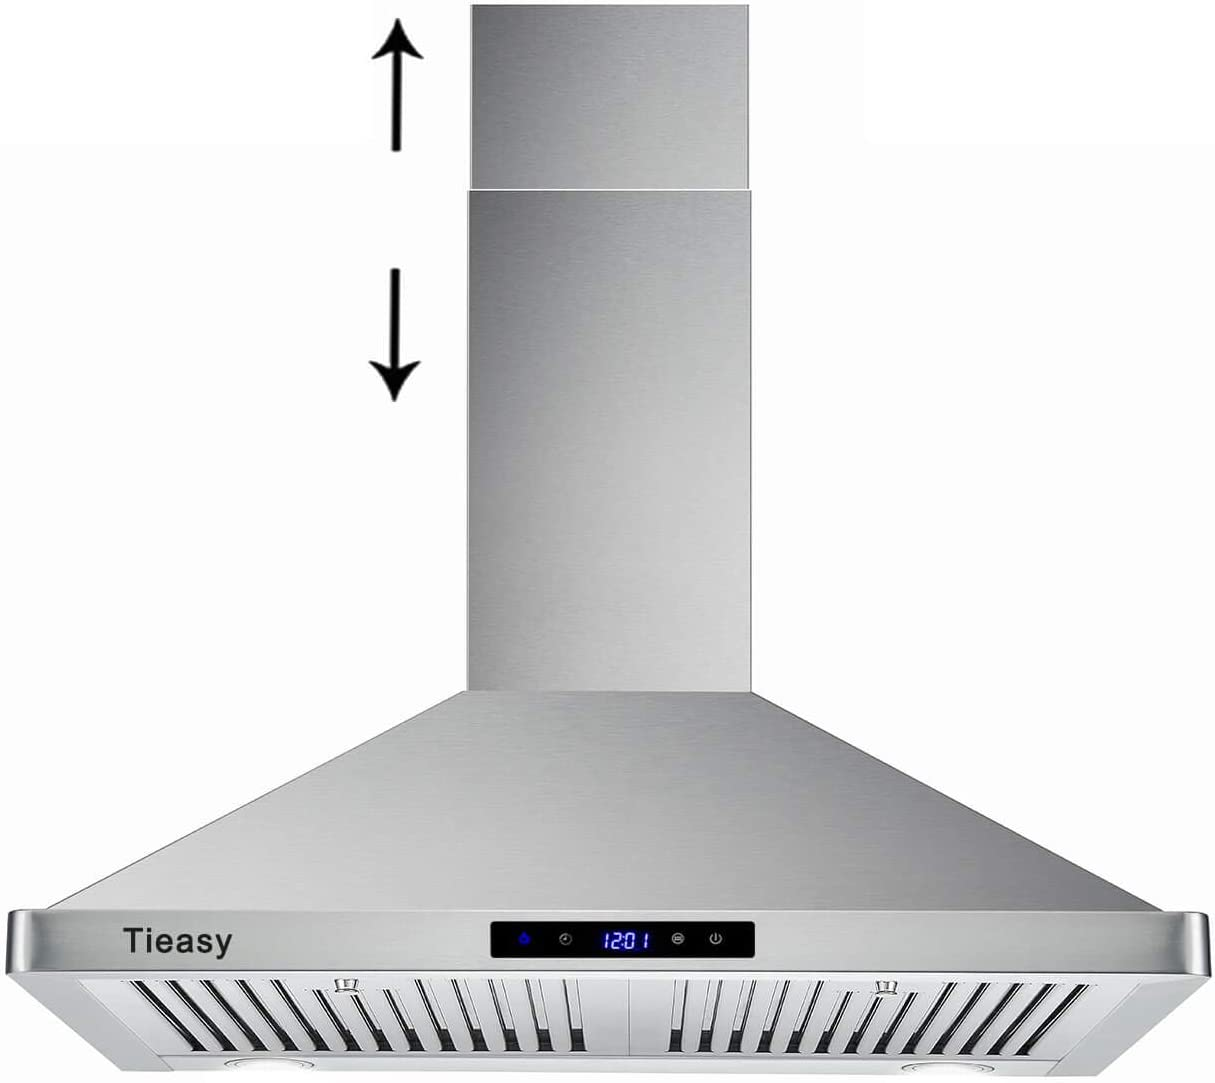 Wall Mount Range Hood 30 inch Kitchen Hood 700 CFM with Touch Control Permanent Filters Stainless Steel 3 Speed Exhaust Fan LED Light, Tieasy